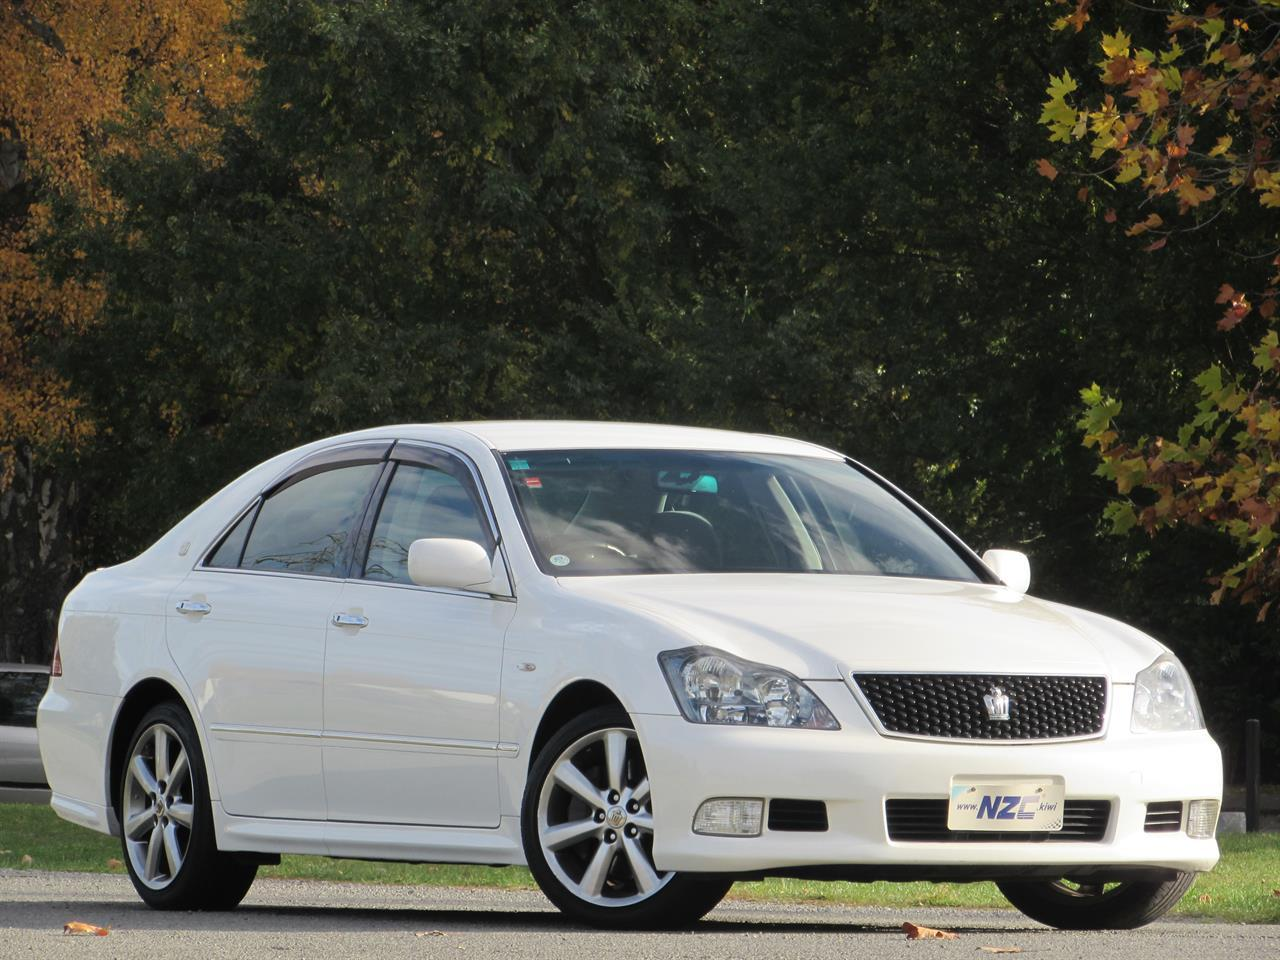 image-0, 2006 Toyota Crown Athlete at Christchurch